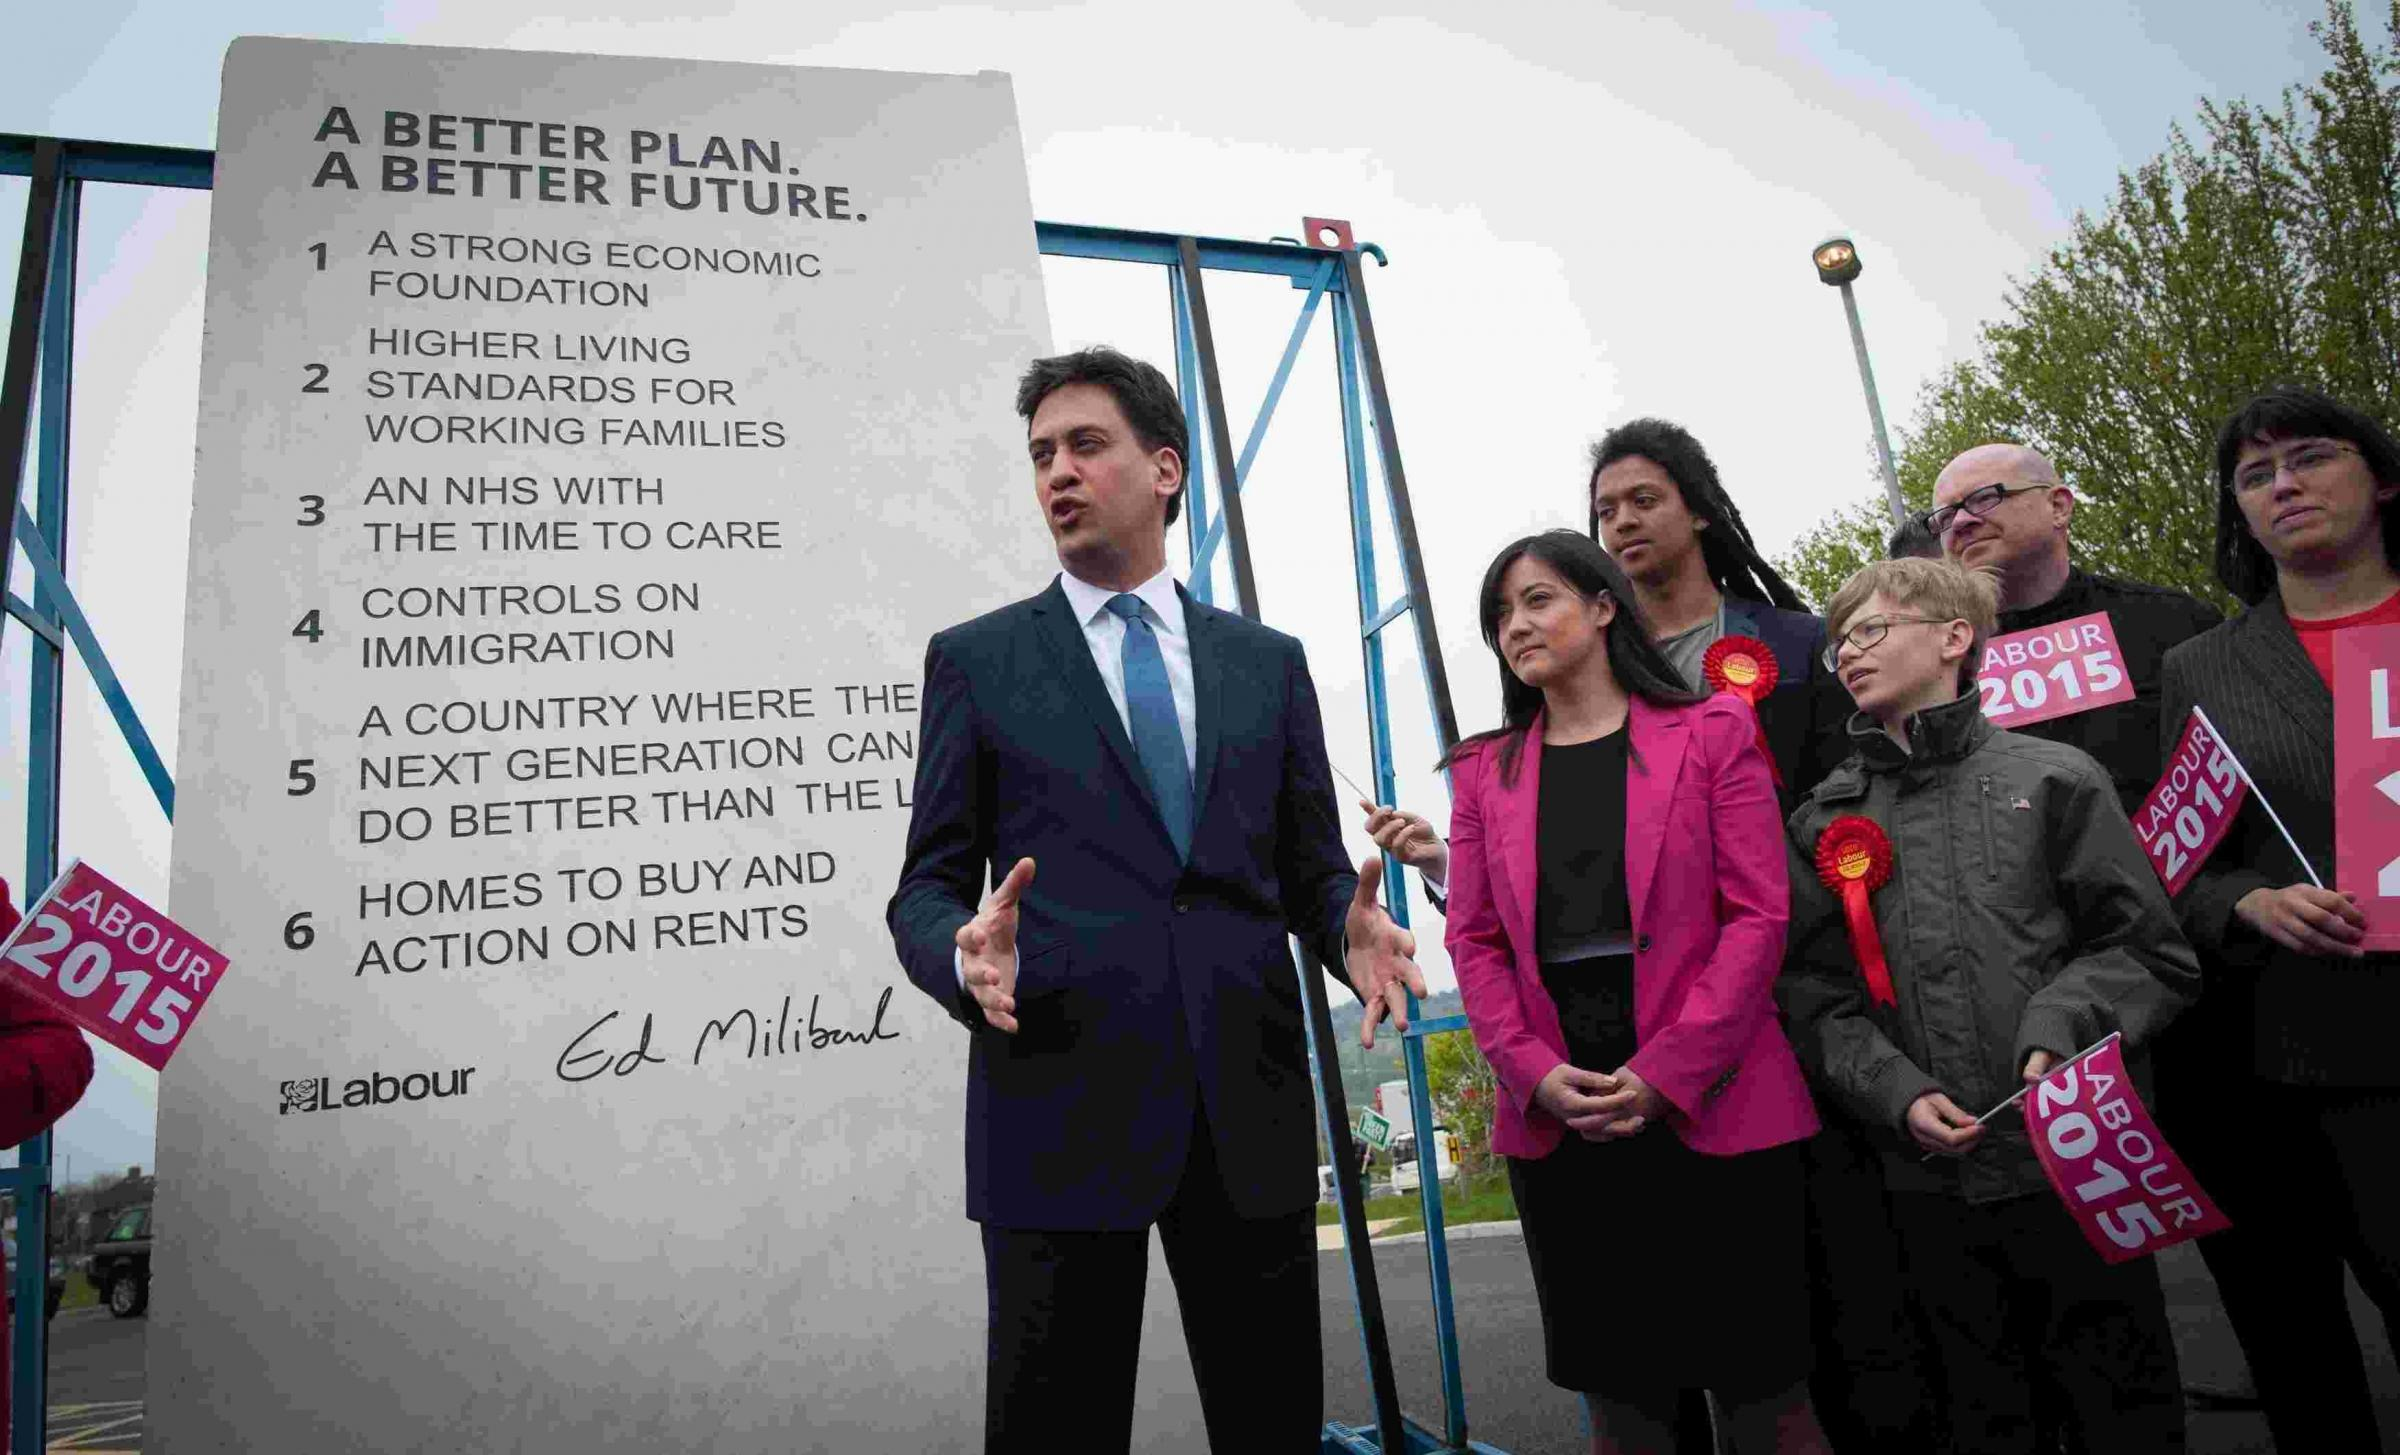 Ed Miliband with Labour's pledge stone